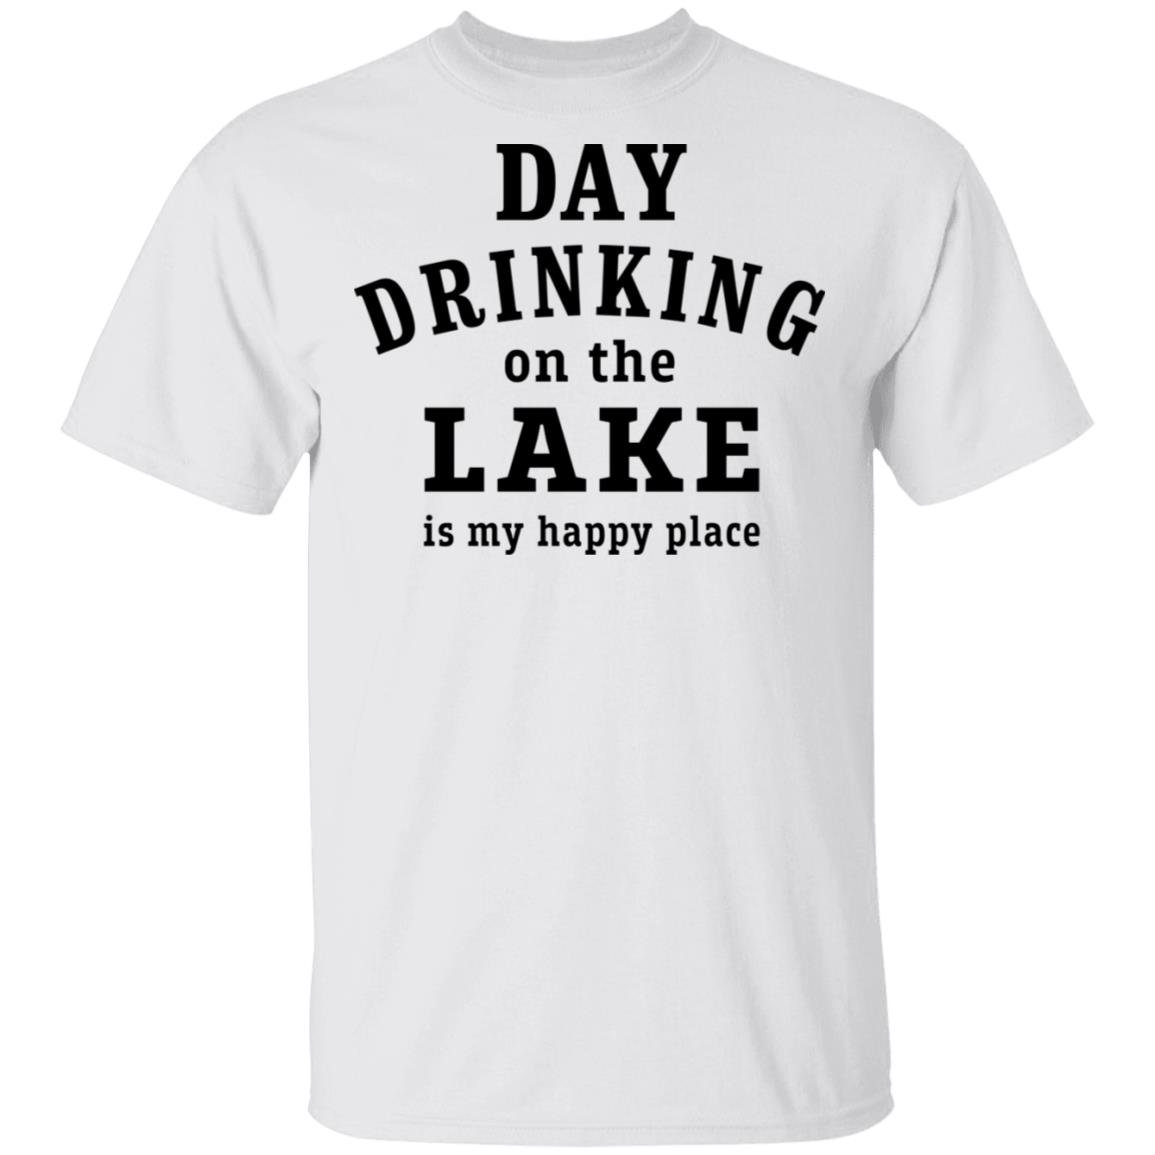 Day drinking on the lake is my happy place shirt, sweatshirt, ladies tee